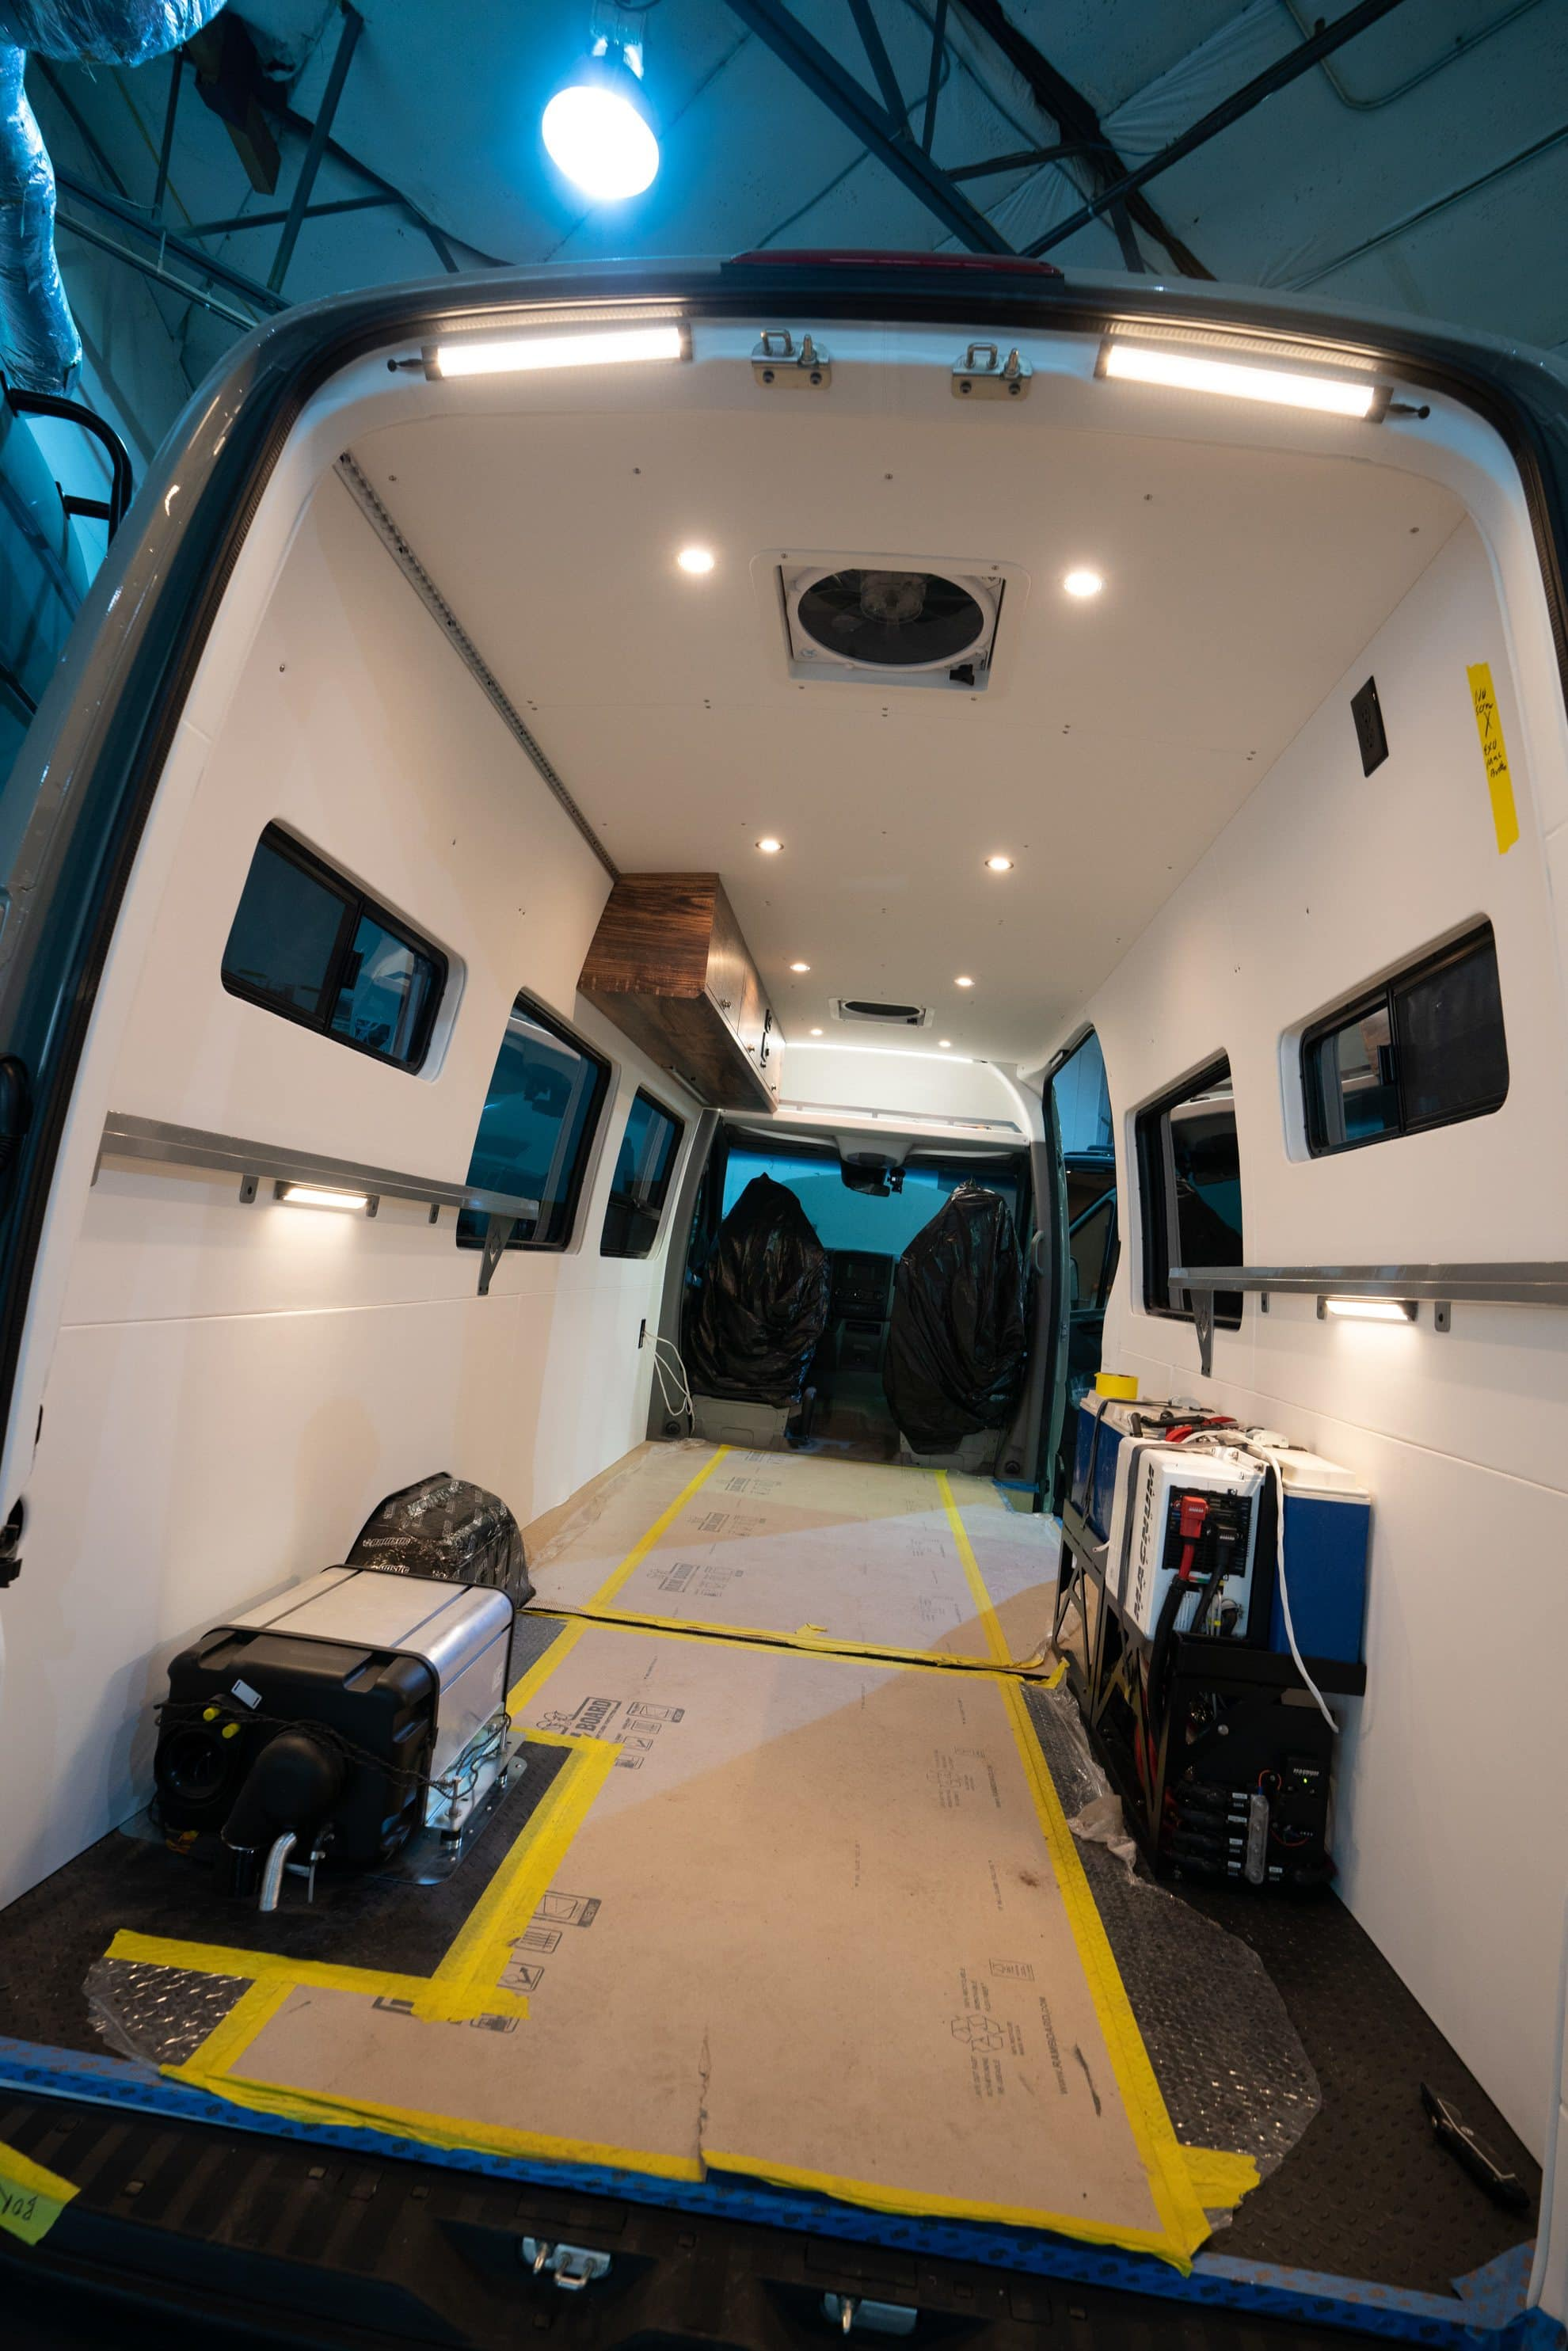 If you're thinking of hiring a campervan conversion company to build out a van for you, here is how to screen them to make sure they're the best choice.